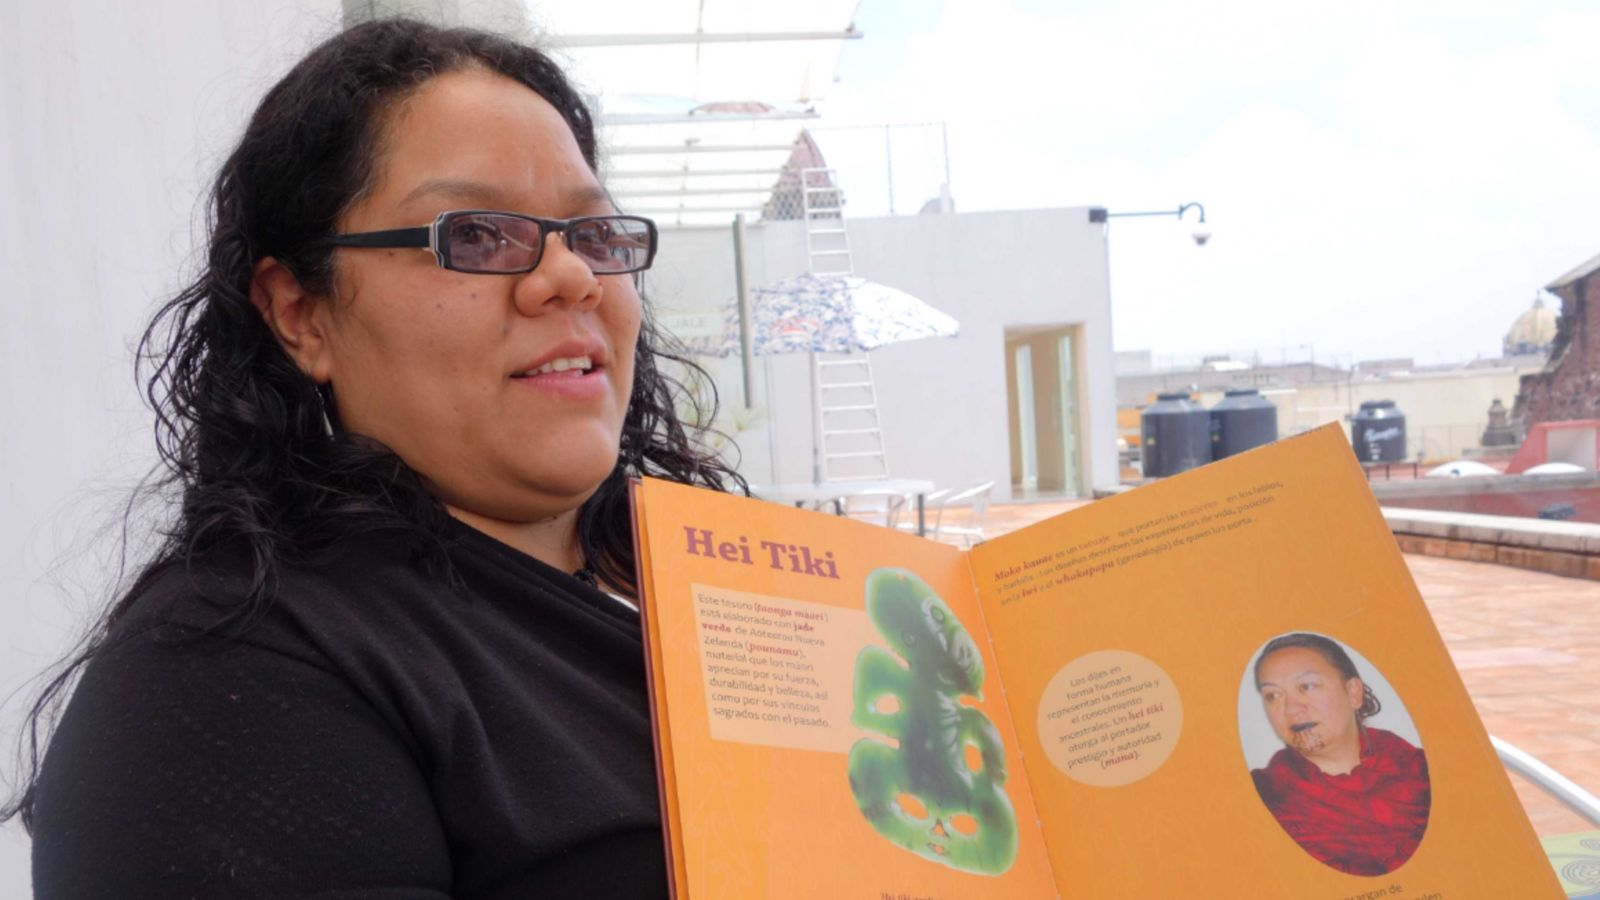 Monserrat Navarro holding a book resource she developed for Museo Nacional de las Culturas's showing of E Tū Ake